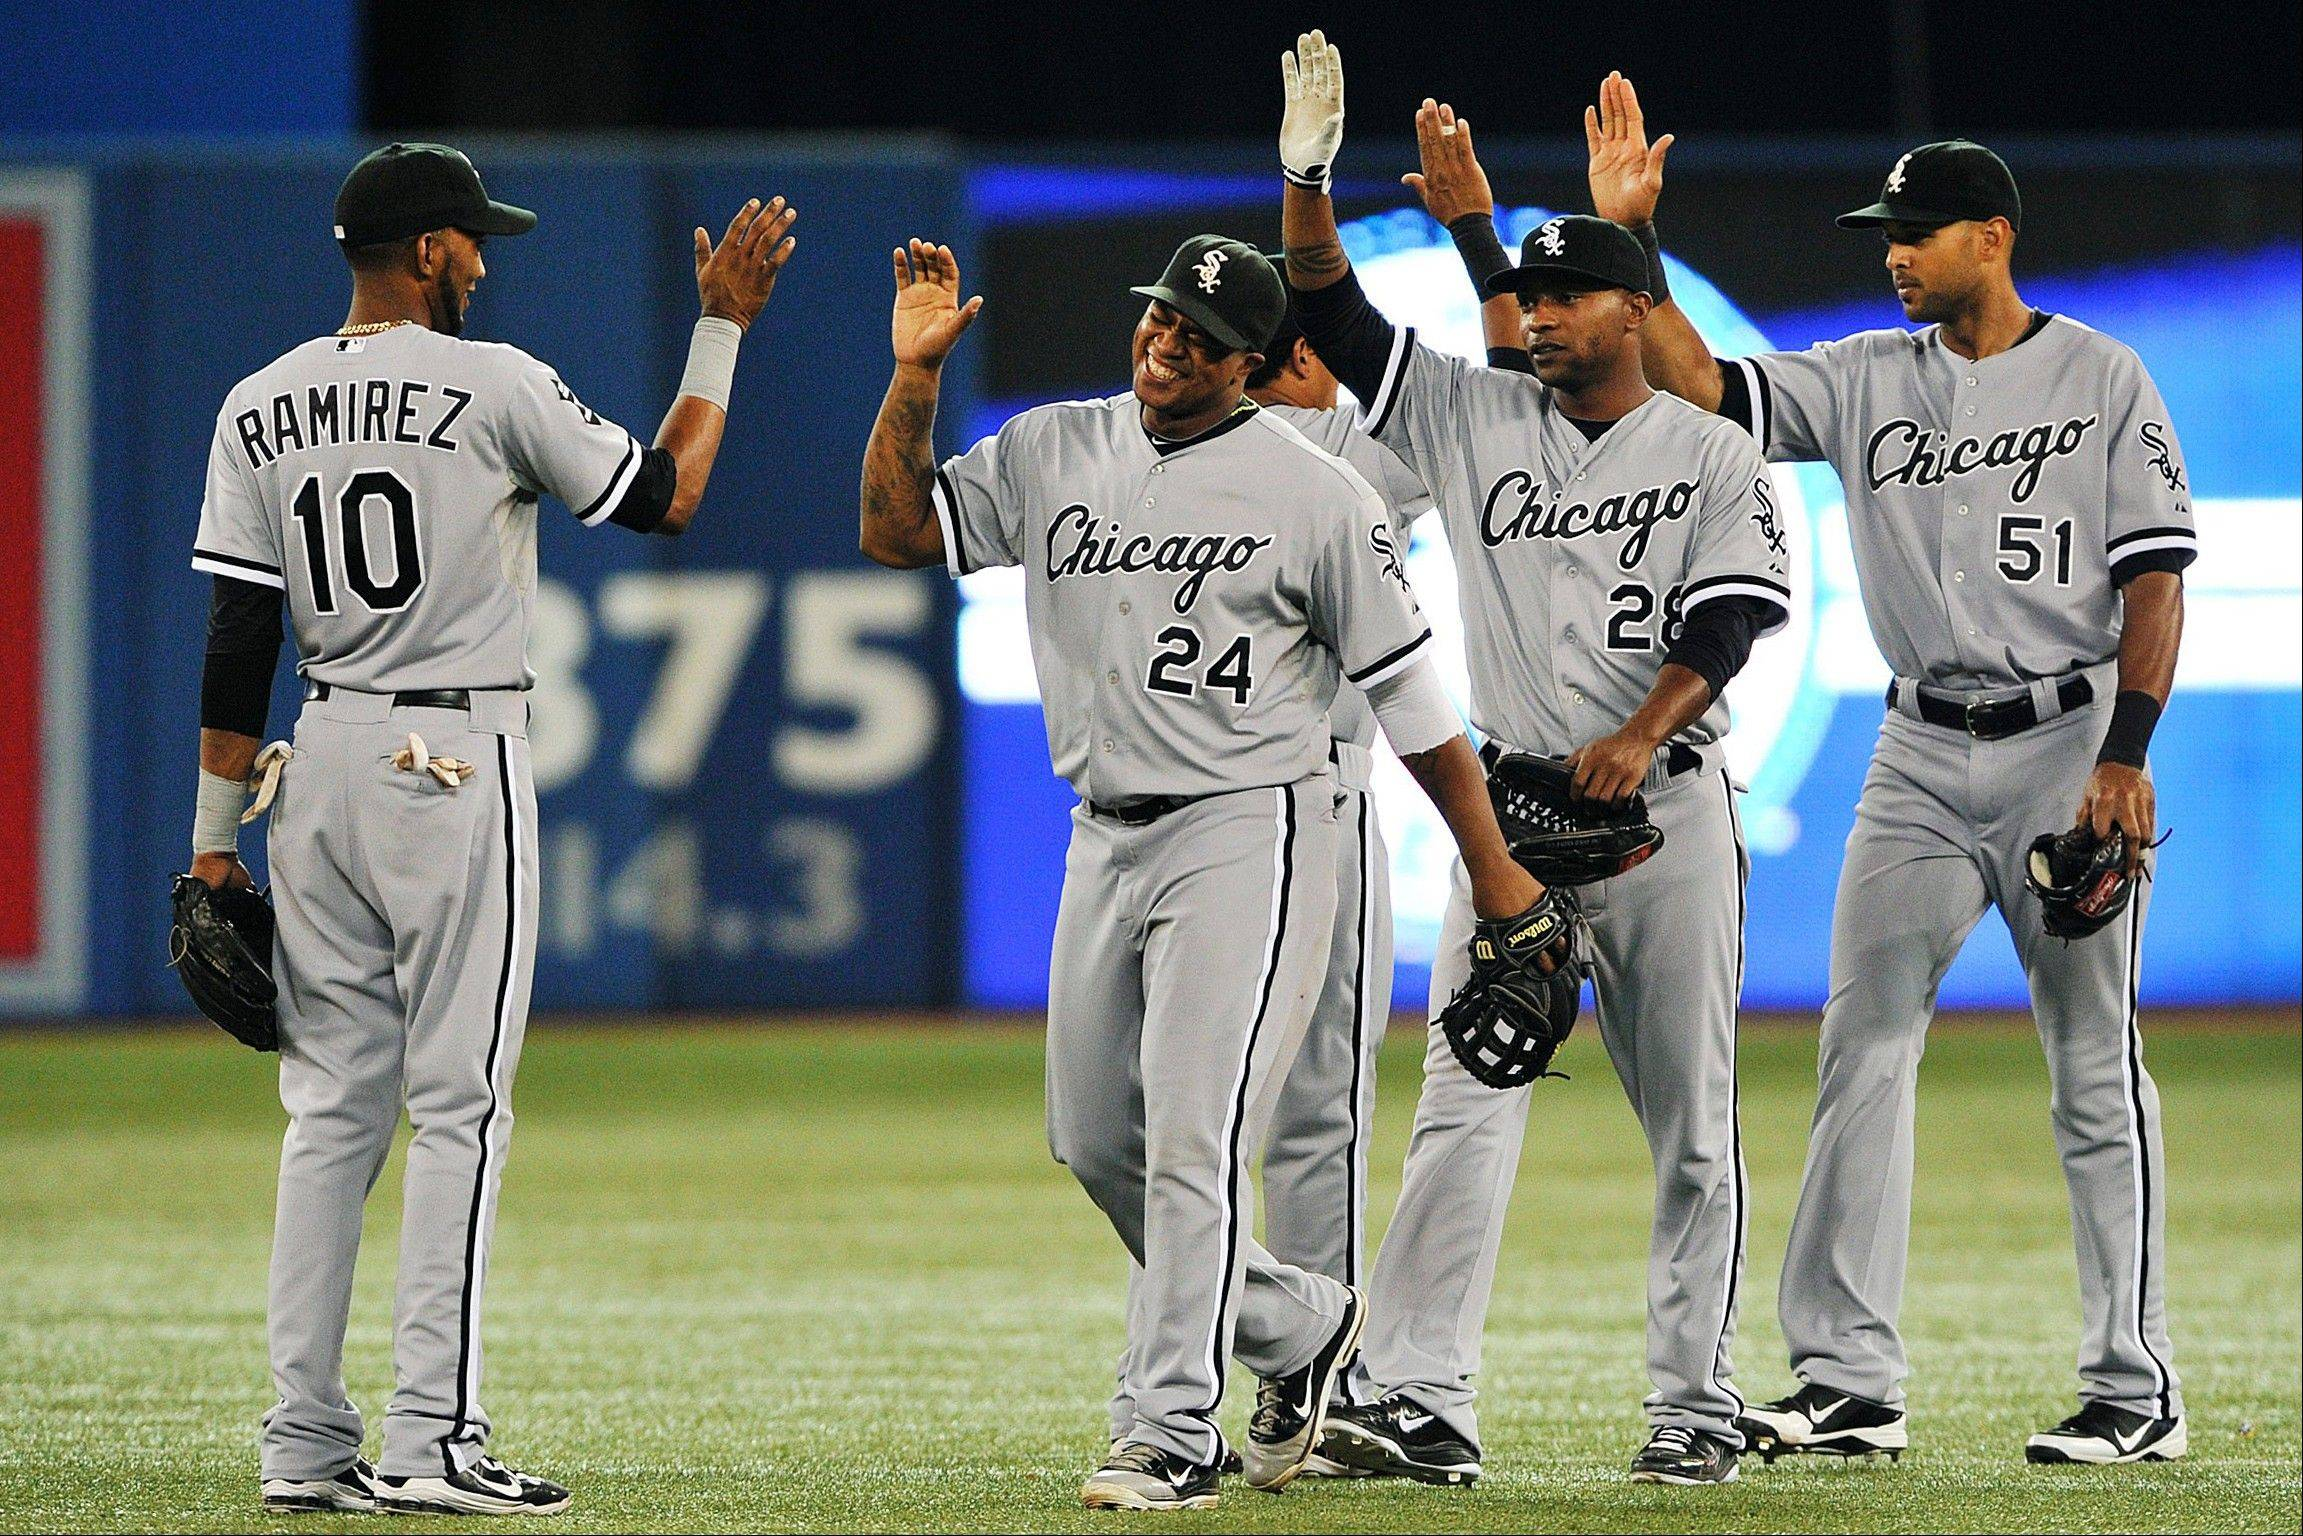 The White Sox' Dayan Viciedo (24) smiles as he celebrates with Alexei Ramirez (10), Dewayne Wise (28) and Alex Rios (51) following a 7-2 win over the Toronto Blue Jays. Barring an apocalyptic collapse down the stretch, the White Sox are going to the playoffs for the first time since 2008.